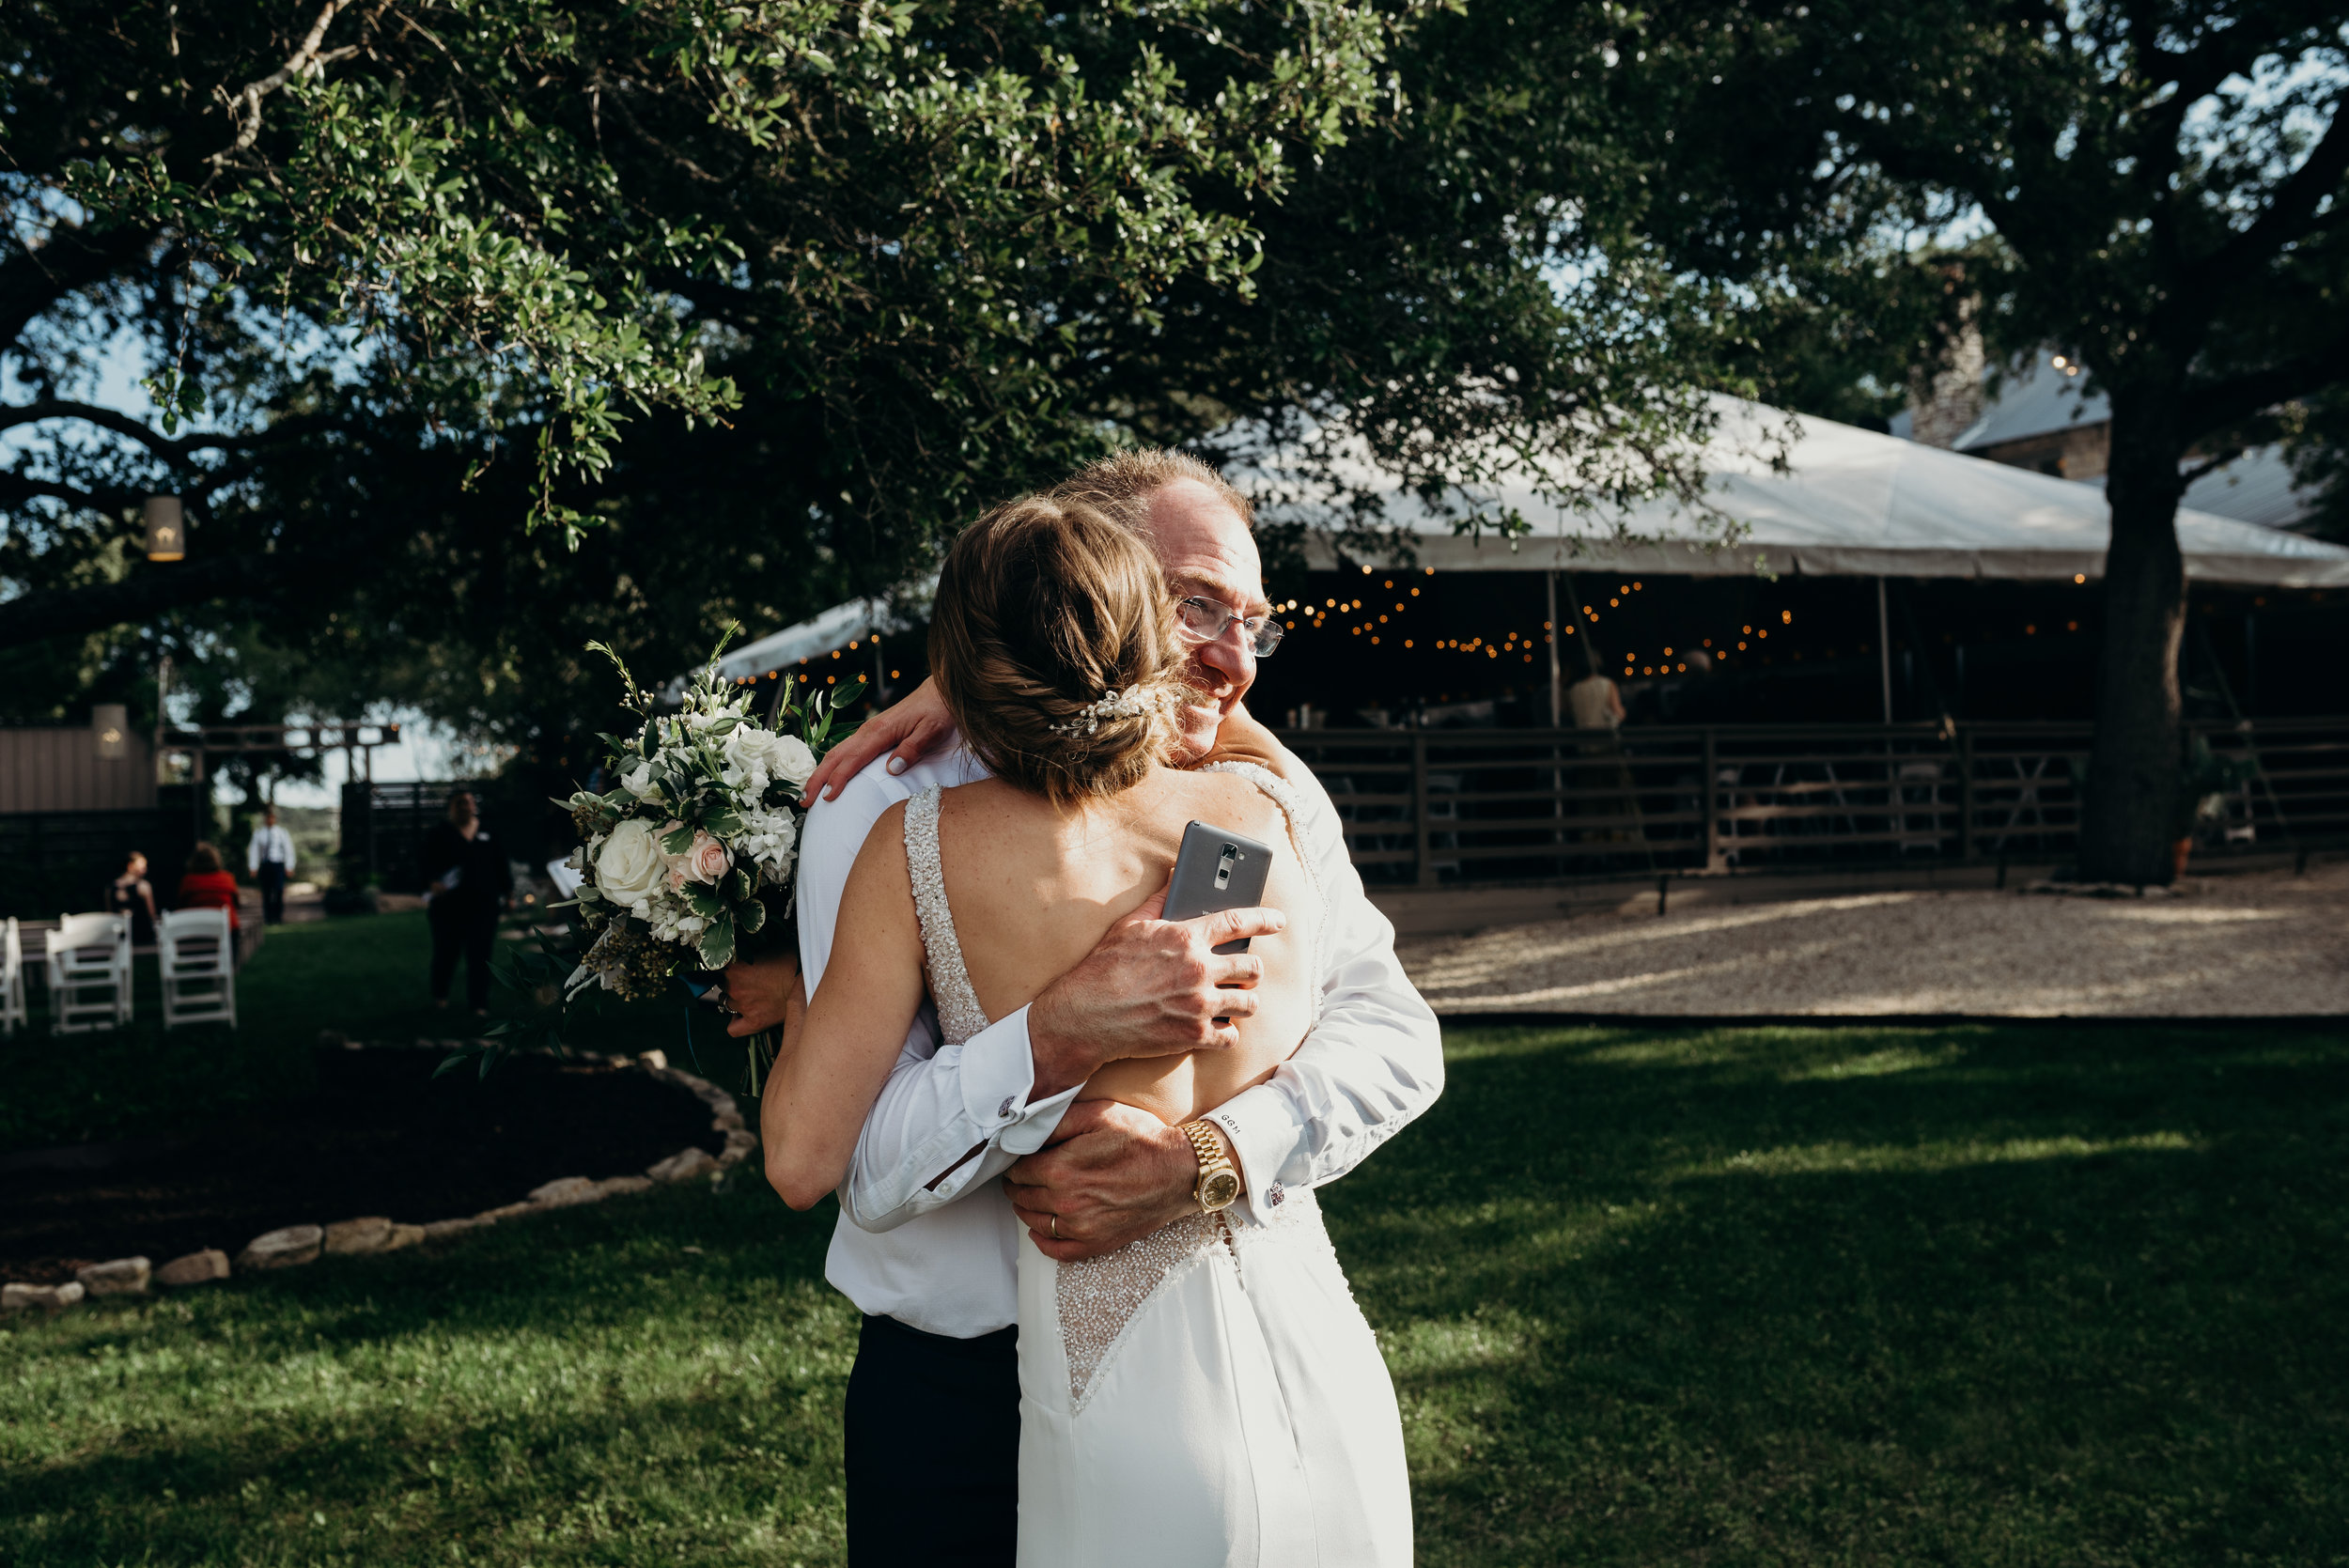 Megan+Sam Wedding-395.JPG